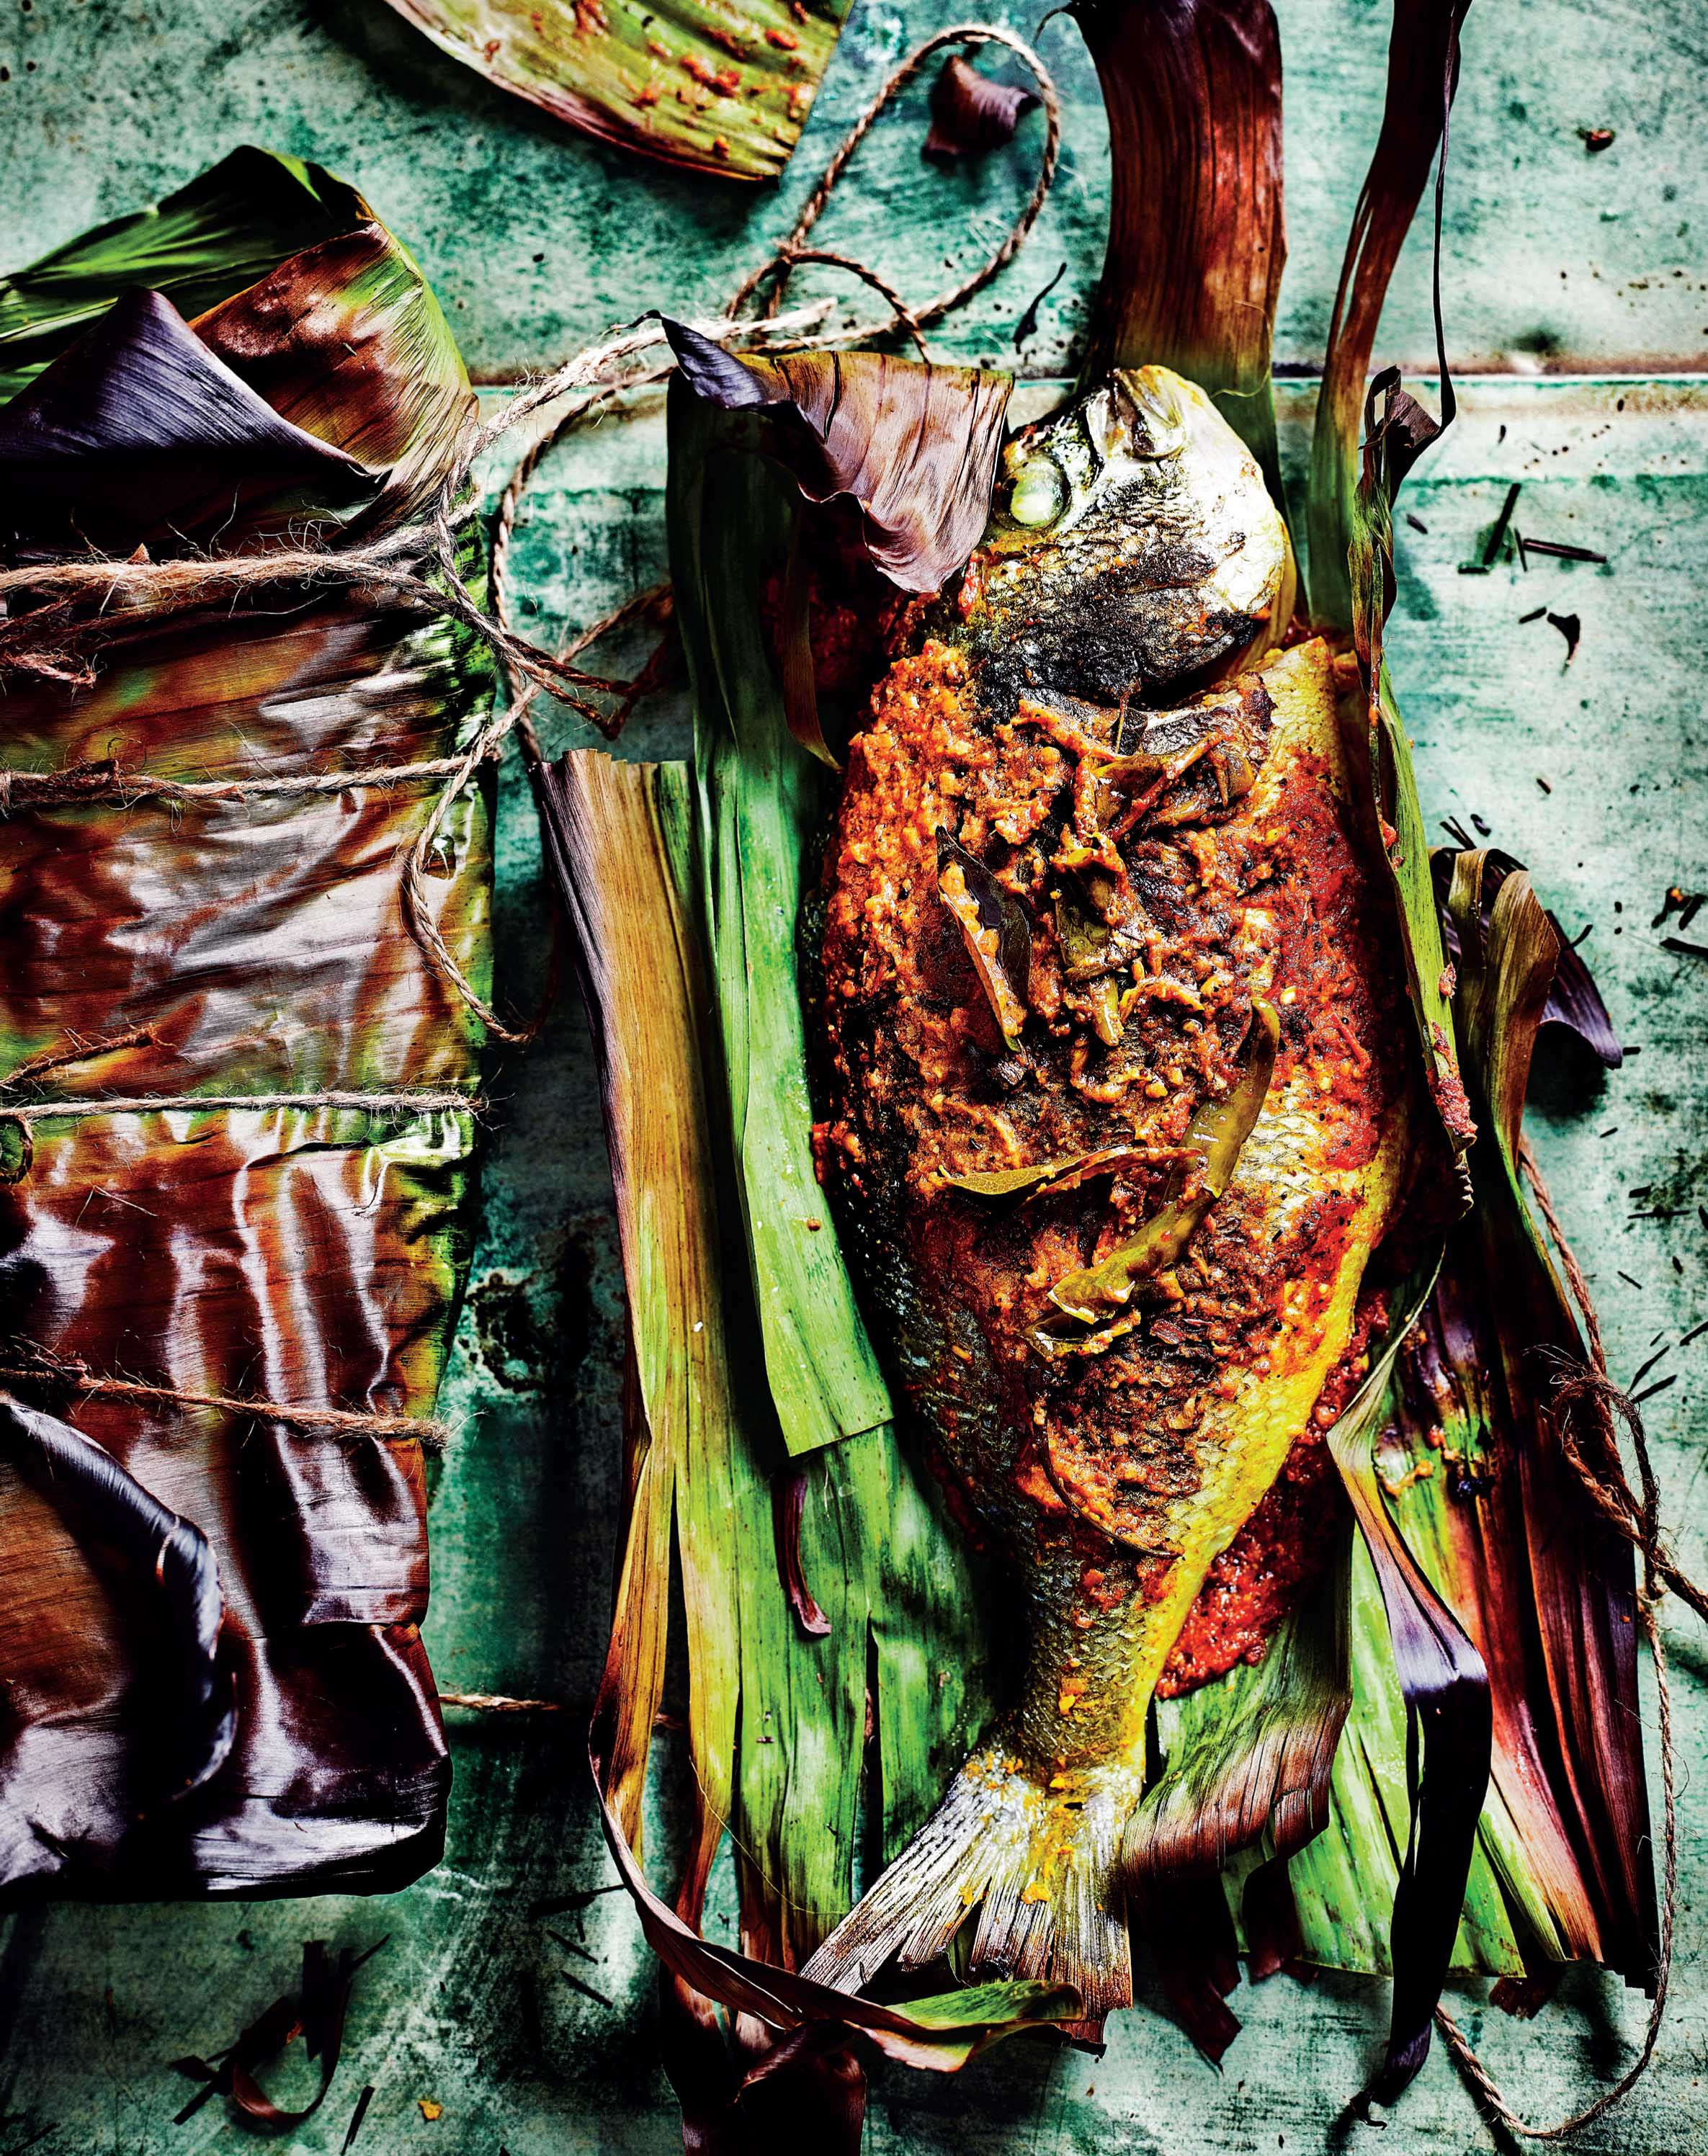 Keralan banana leaf-wrapped fish